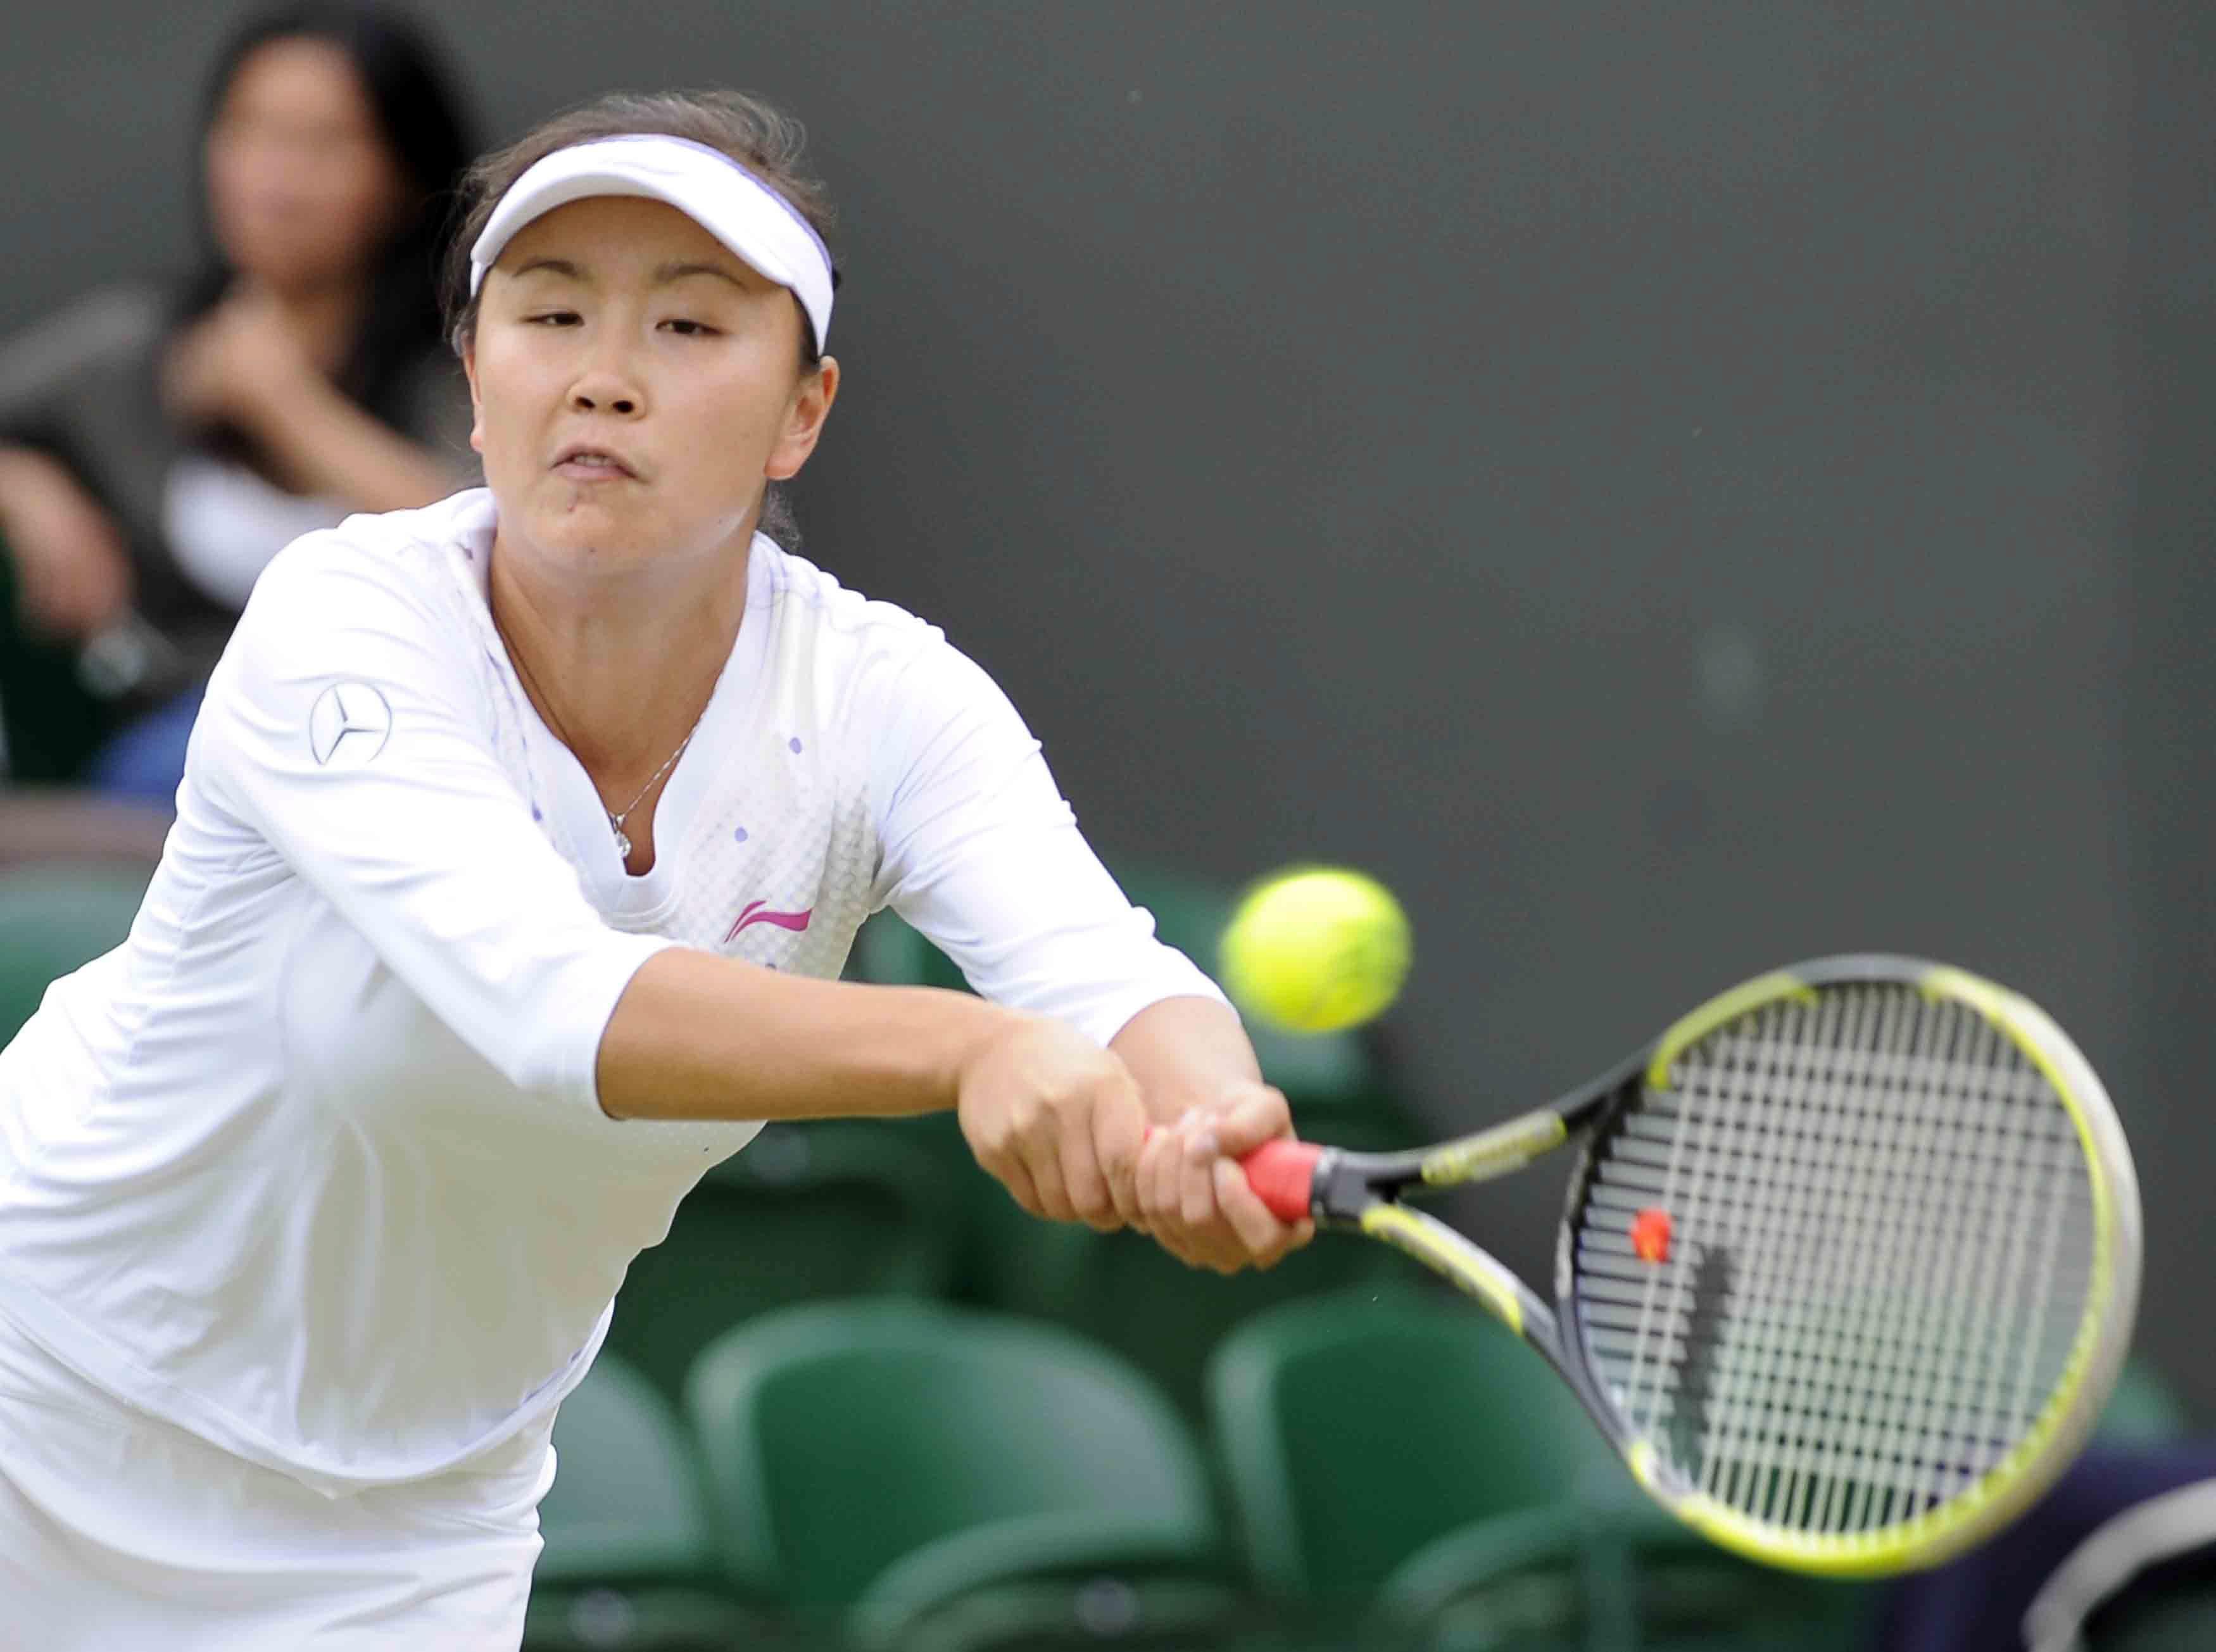 Peng was ranked No 1 in the world in women's doubles in 2014